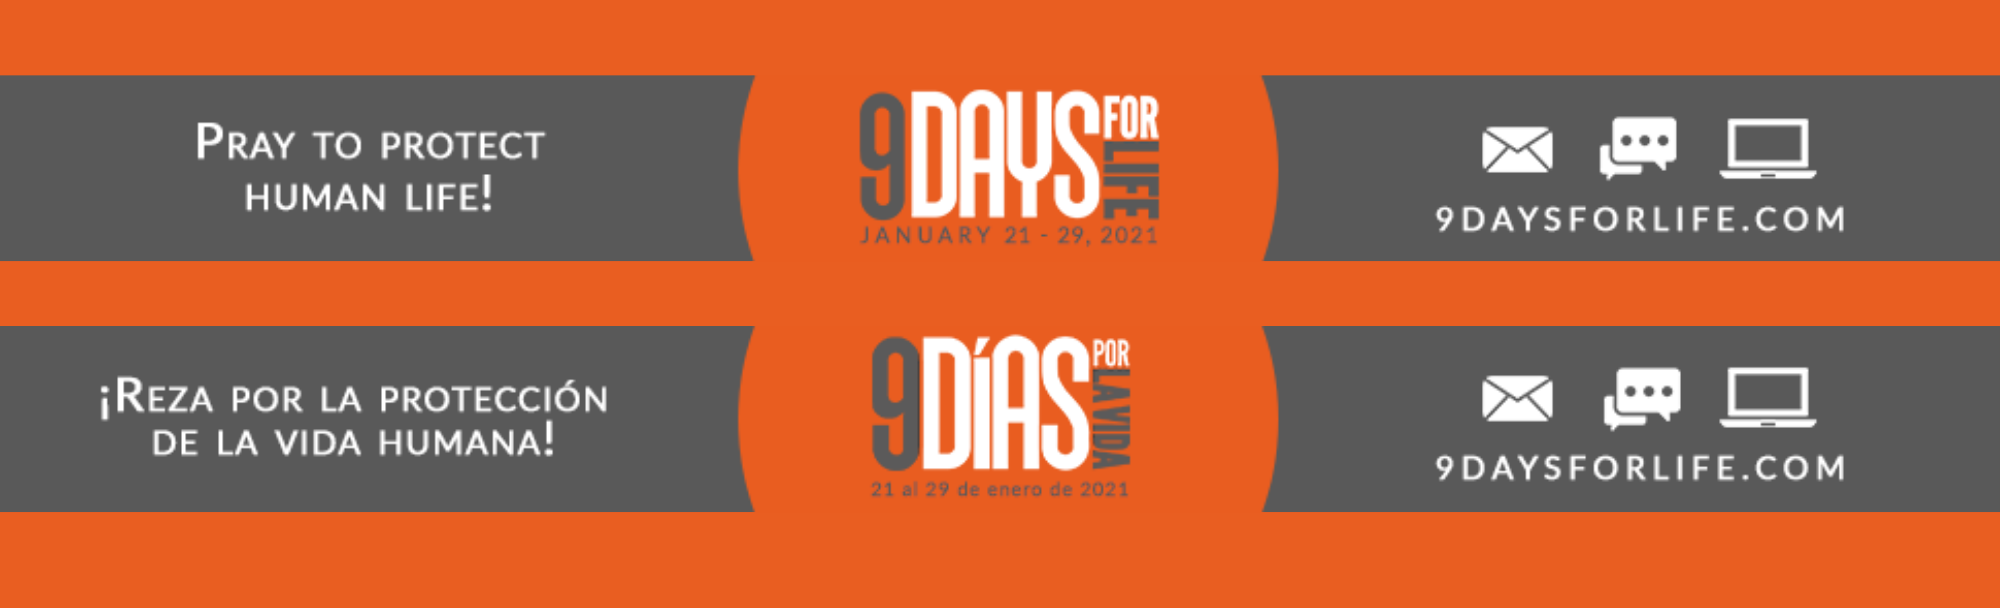 9 Days For Life Home Page Slider